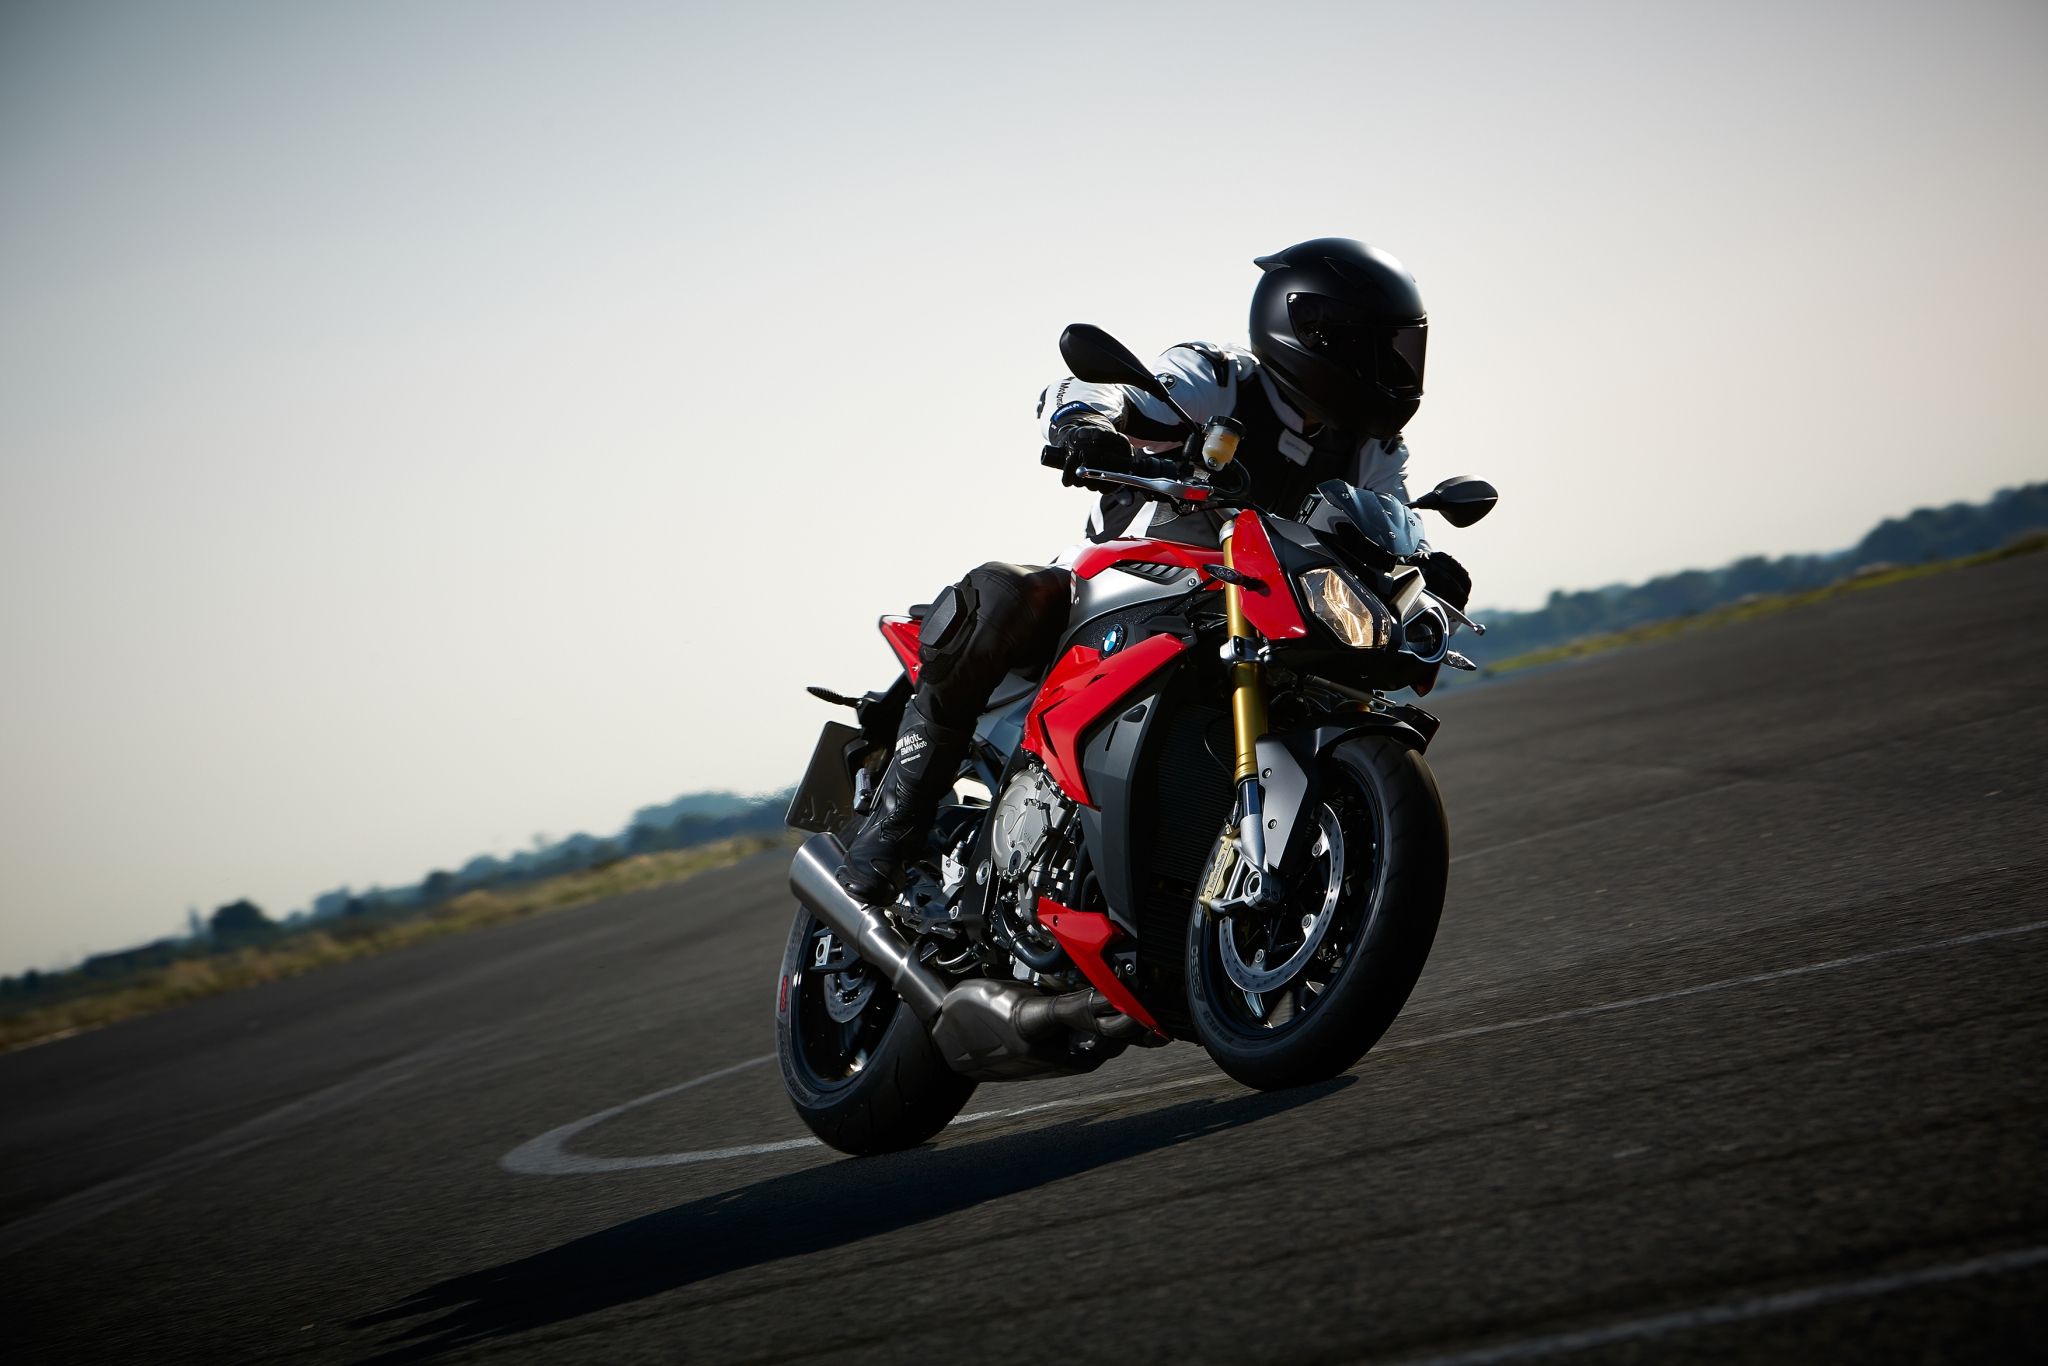 2014-bmw-s1000r-even-more-evil-than-the-rr-photo-gallery 2